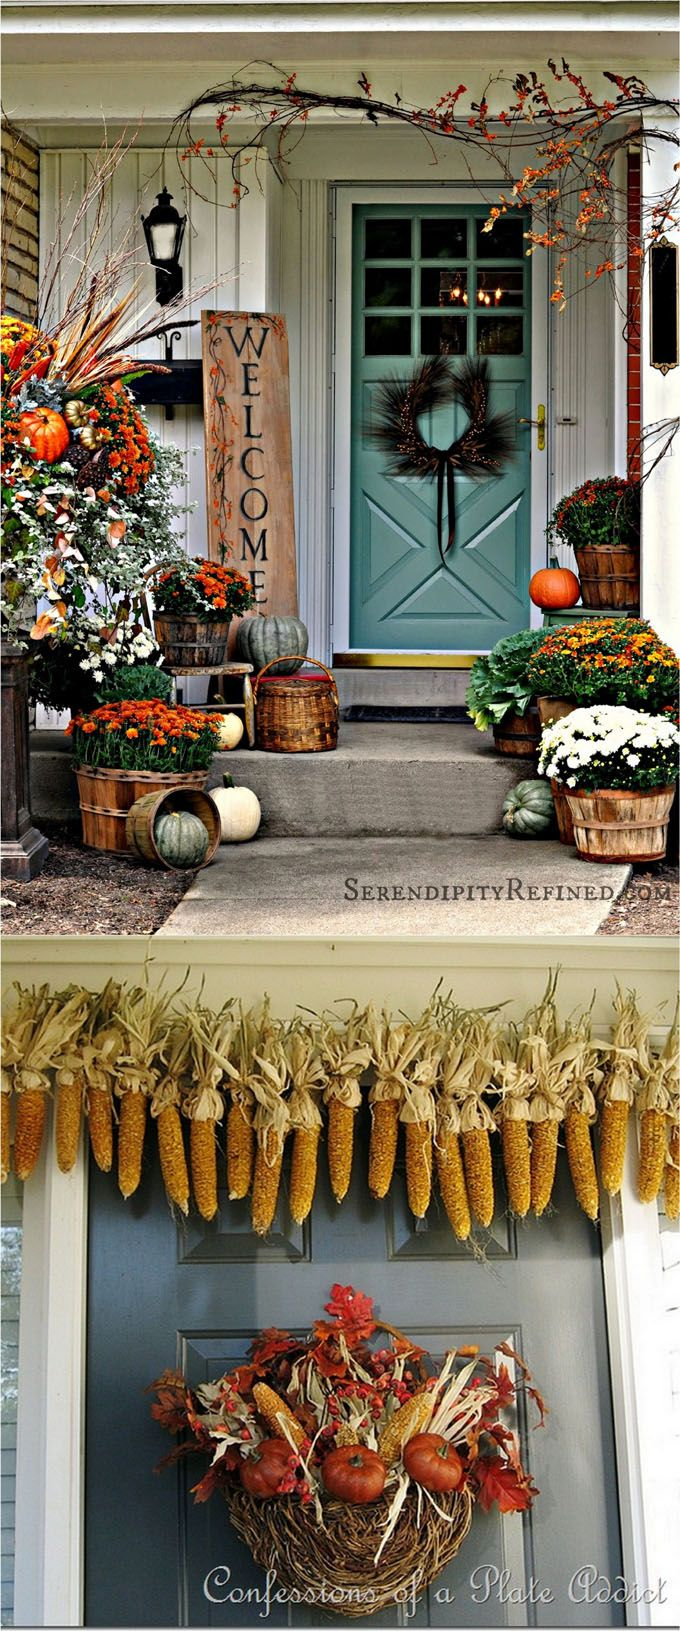 25 splendid DIY fall decorations for your front door and porch: from pumpkin house numbers, corn garlands, colorful planters to harvest displays and more! - A Piece Of Rainbow